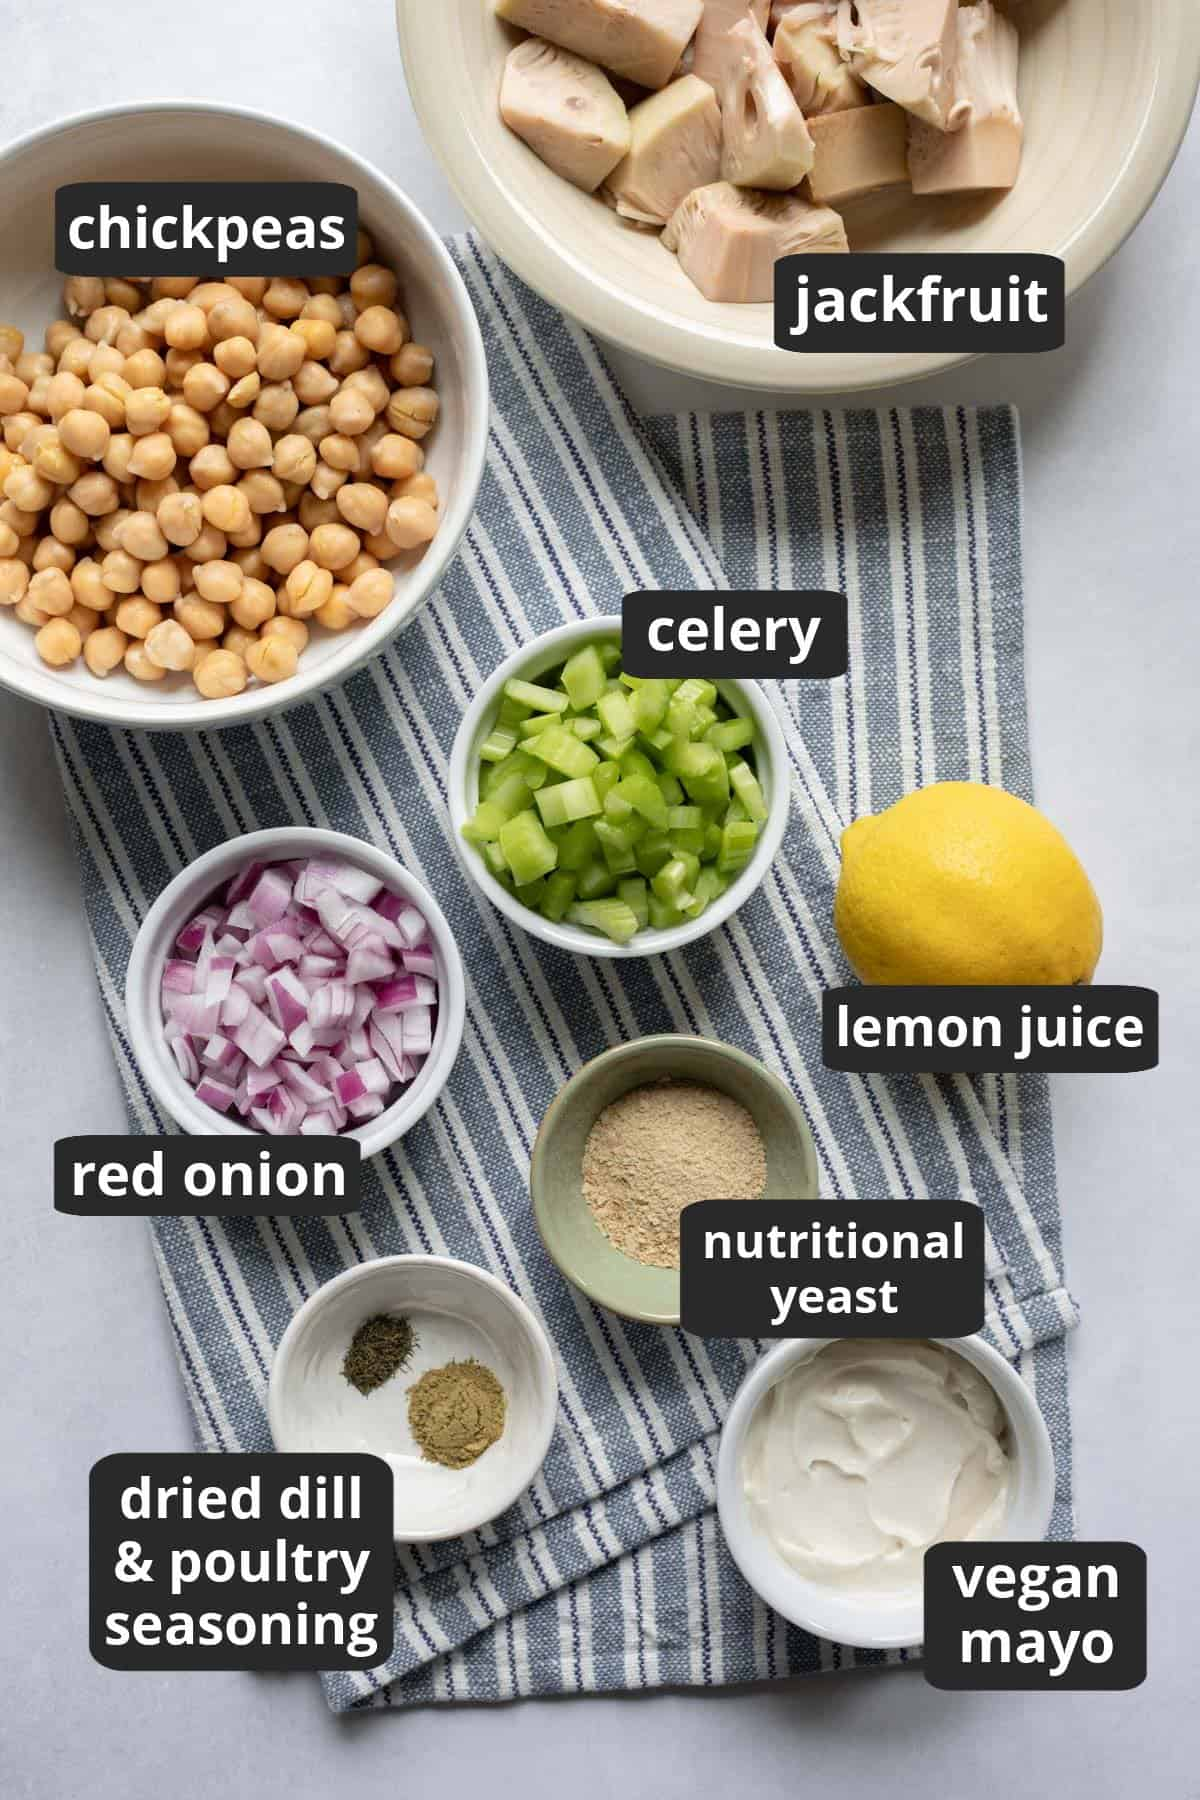 a labeled photo of the ingredients needed for the recipe.